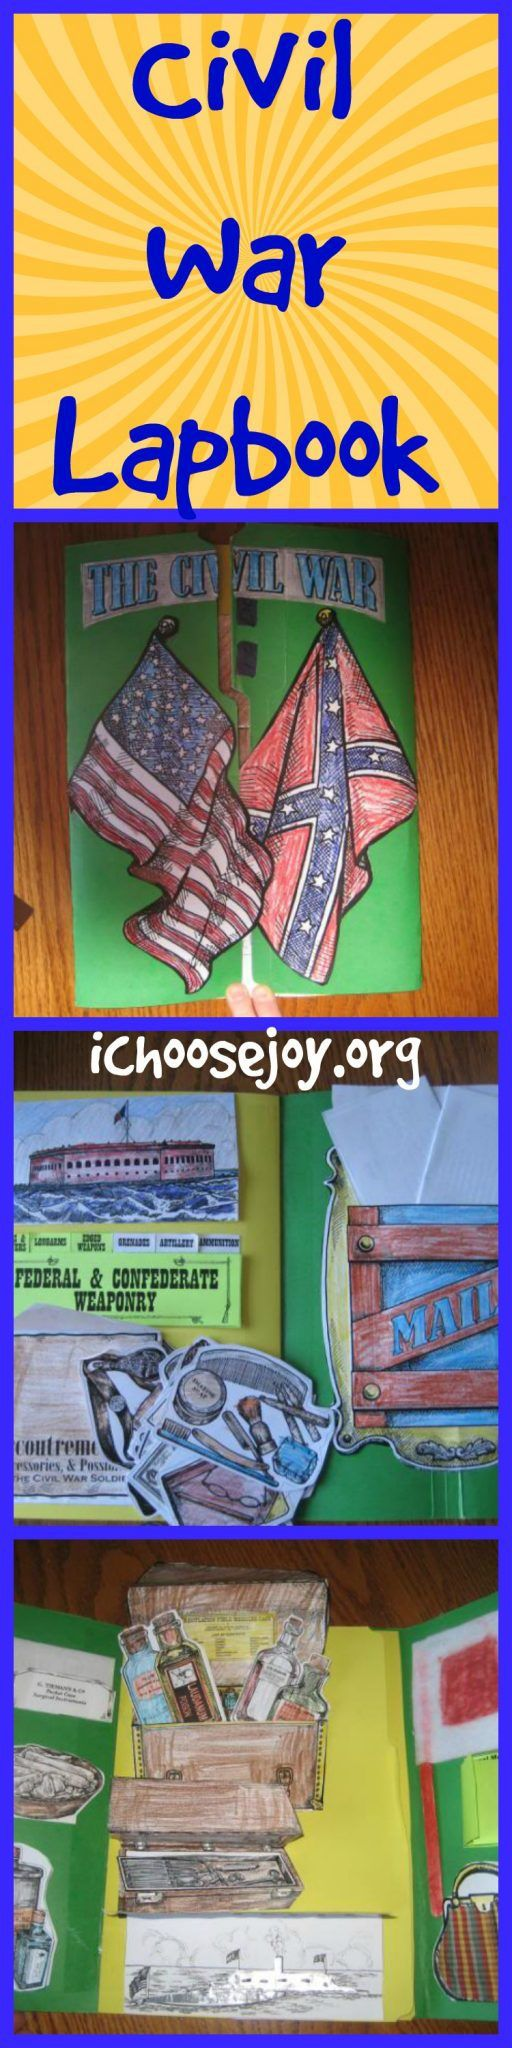 Civil War Lapbook from Homeschool in the Woods. We loved doing this history supplement in our homeschool when we studied the Civil War.